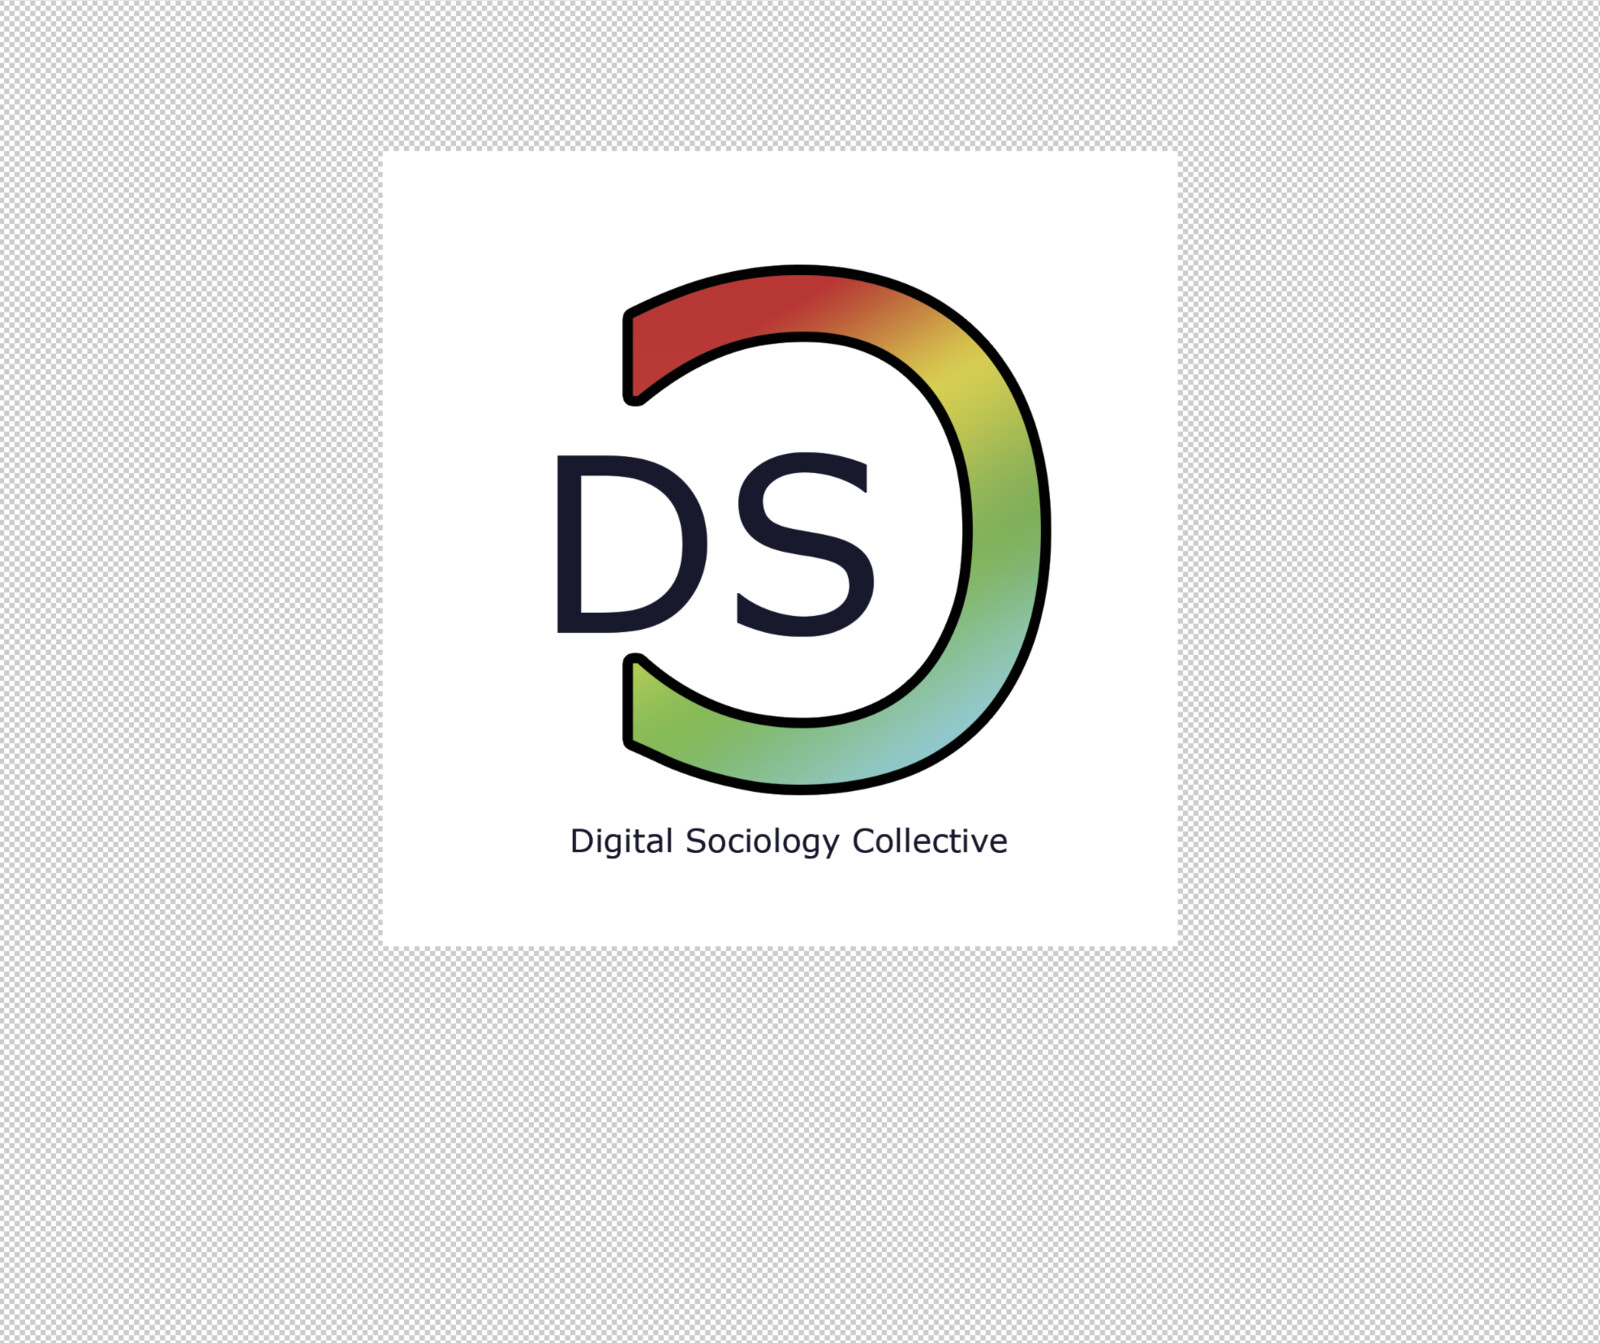 An initial sticker concept mockup for the Digital Sociology Collective.